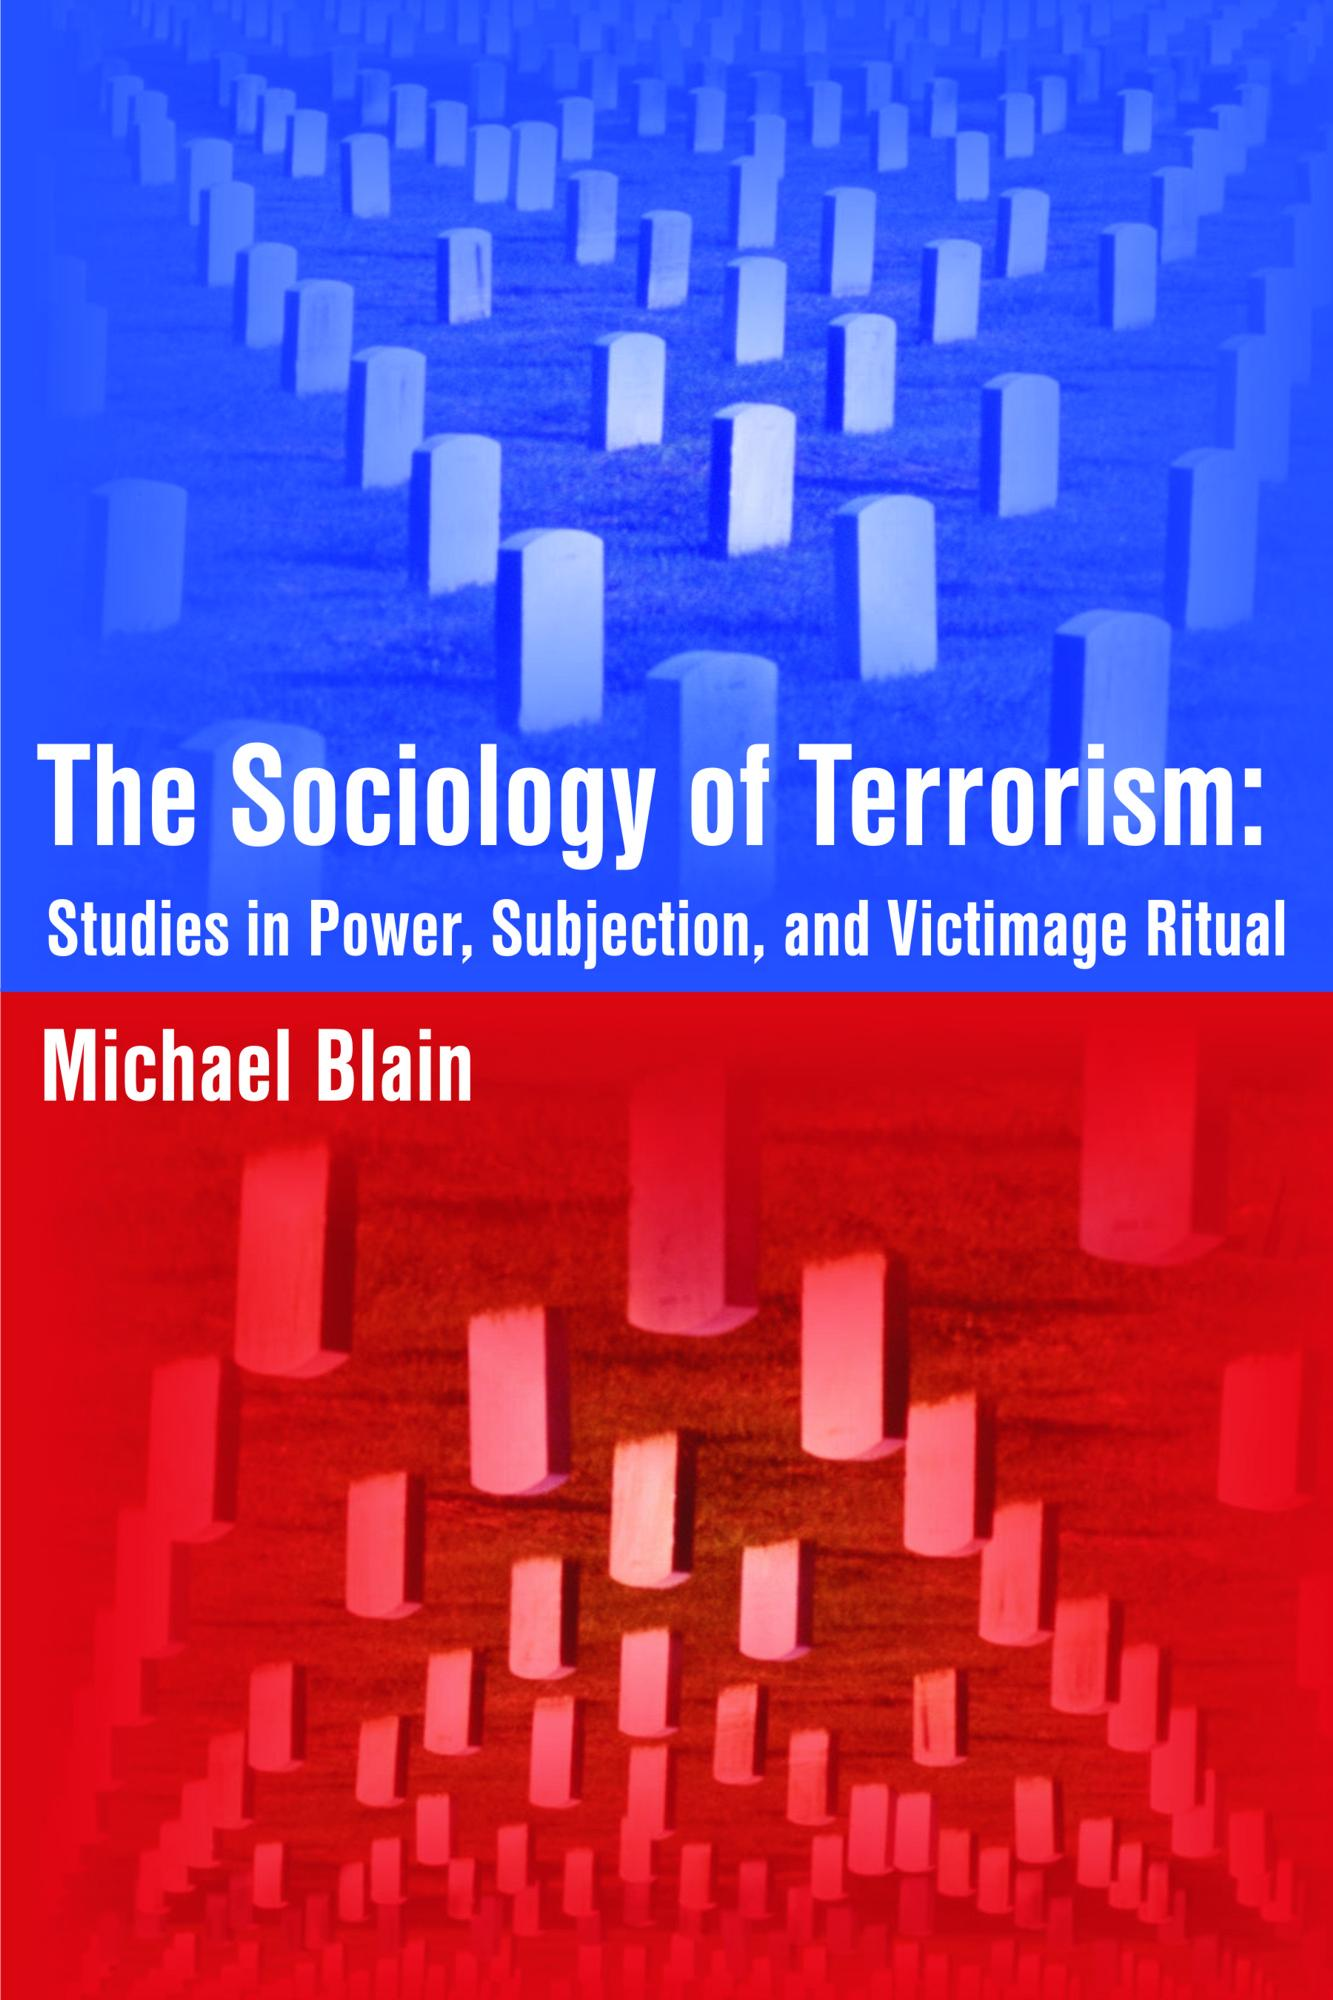 The Sociology of Terrorism: Studies in Power, Subjection, and Victimage Ritual EB9781599429373